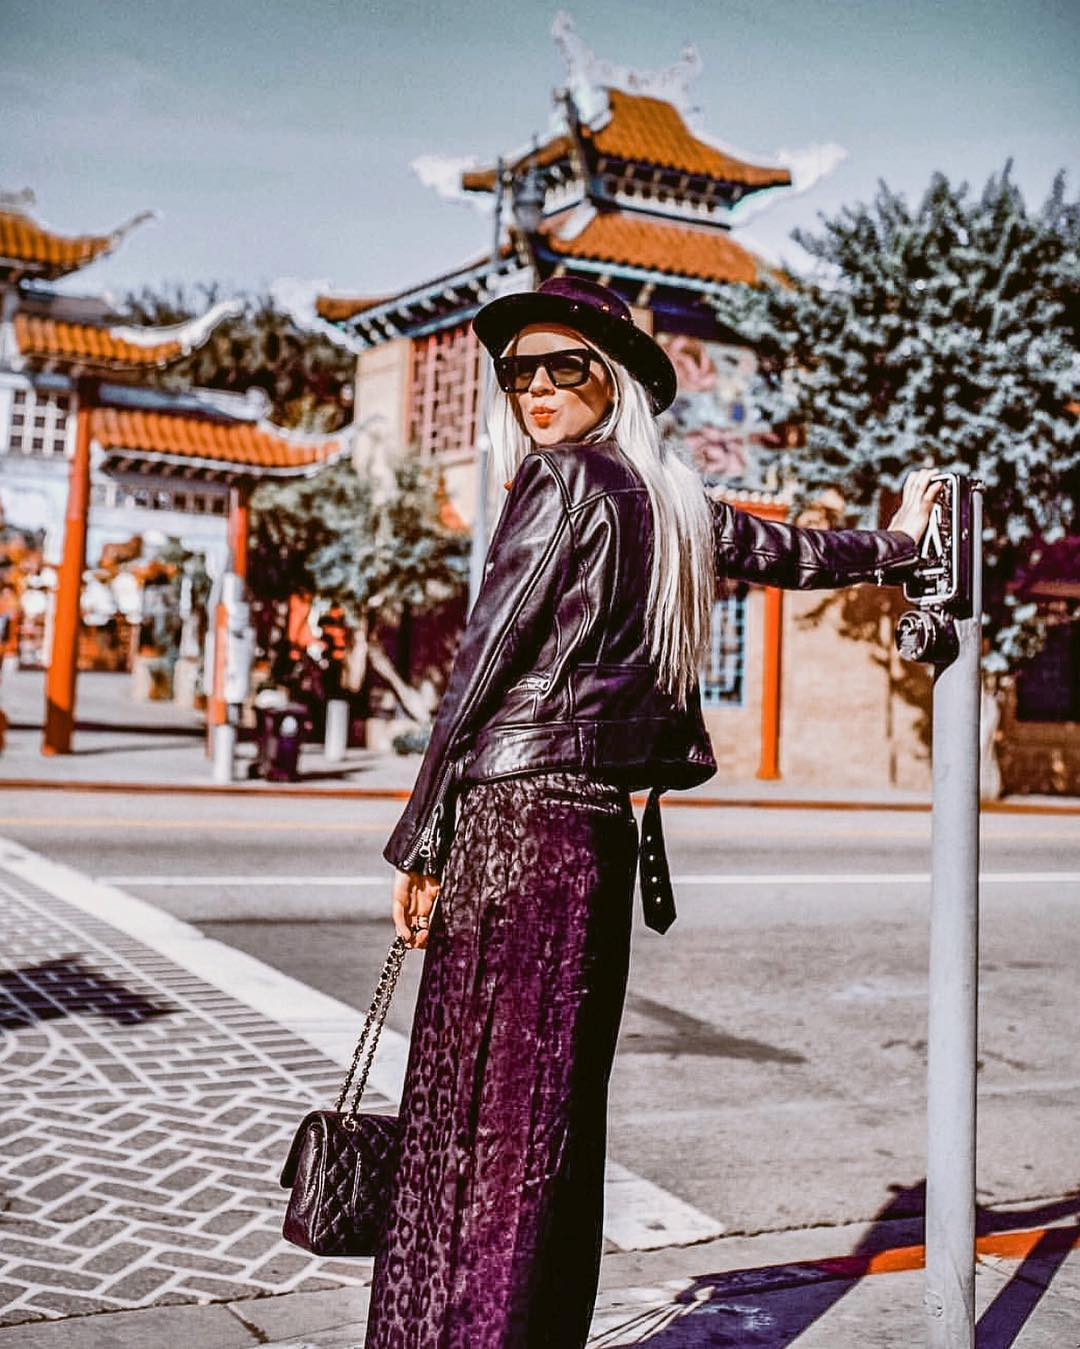 Bohemian Fall OOTD: Maxi Skirt And Leather Jacket 2019